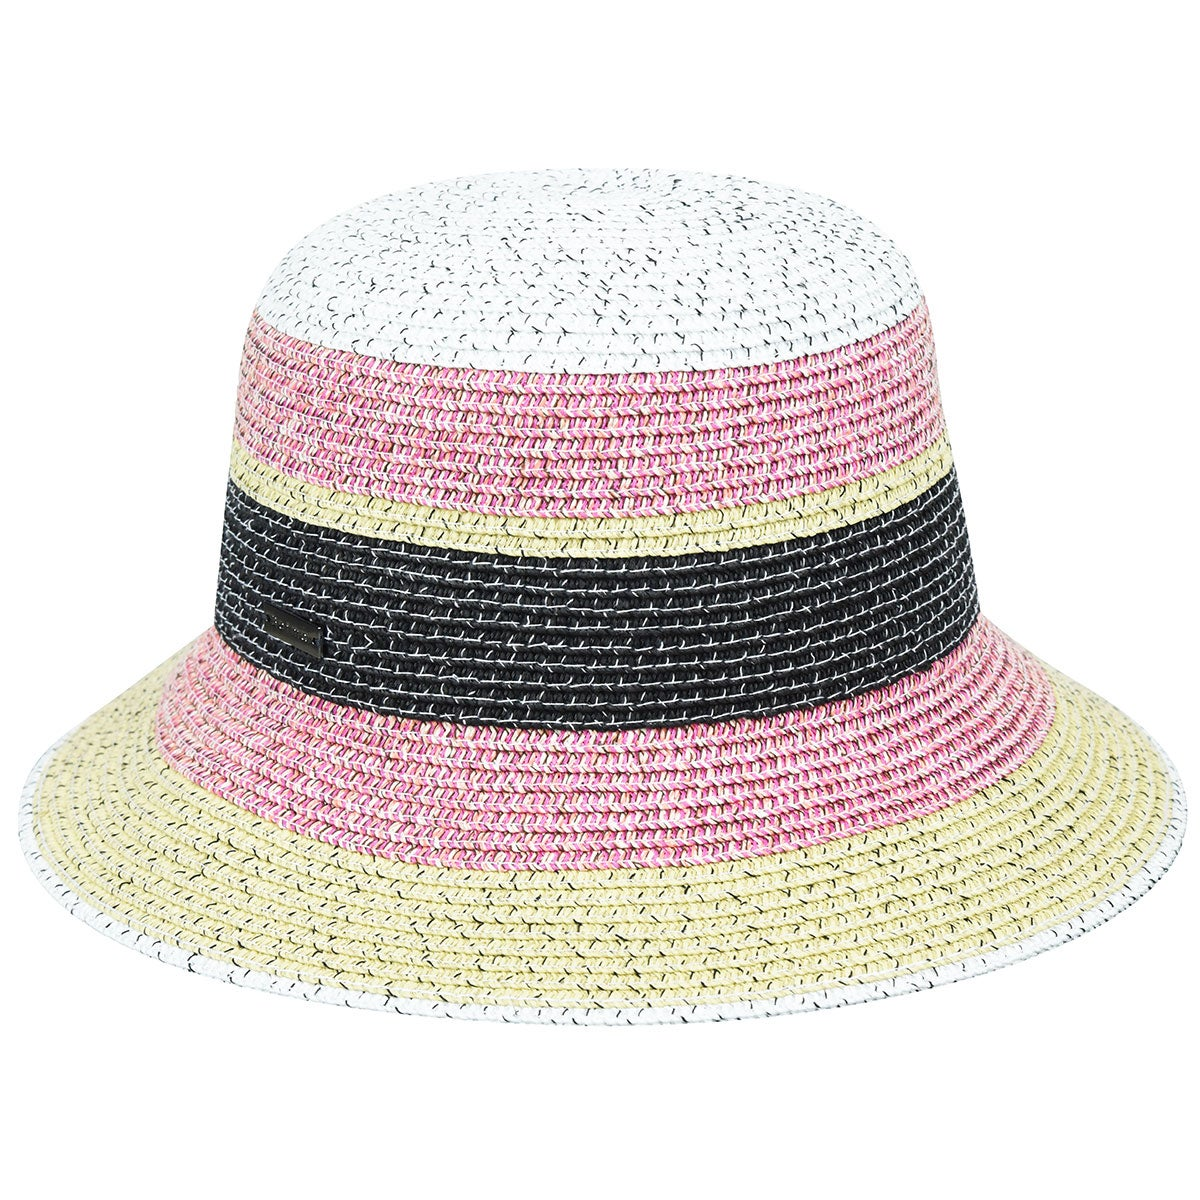 Betmar Catherine Braided Cloche in Pink Multi